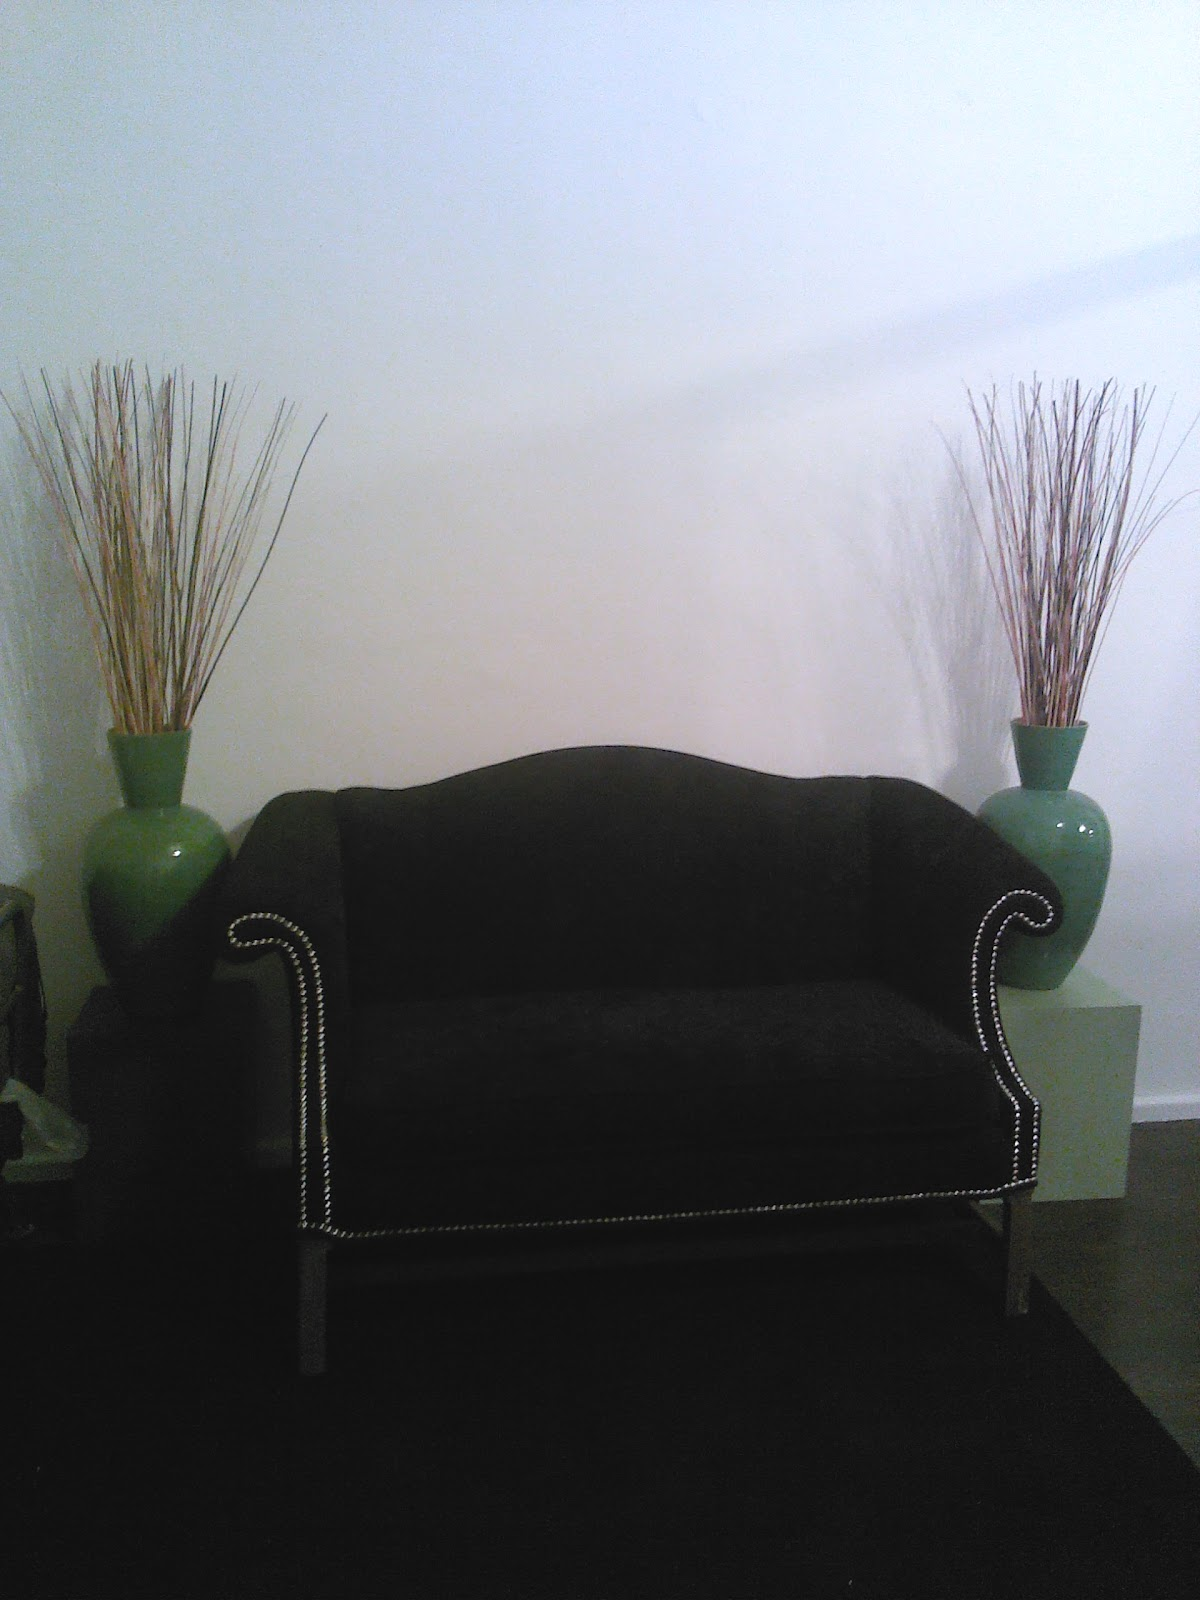 here are a couple sneak peeks pardon the horrible cell phone quality. Black Bedroom Furniture Sets. Home Design Ideas